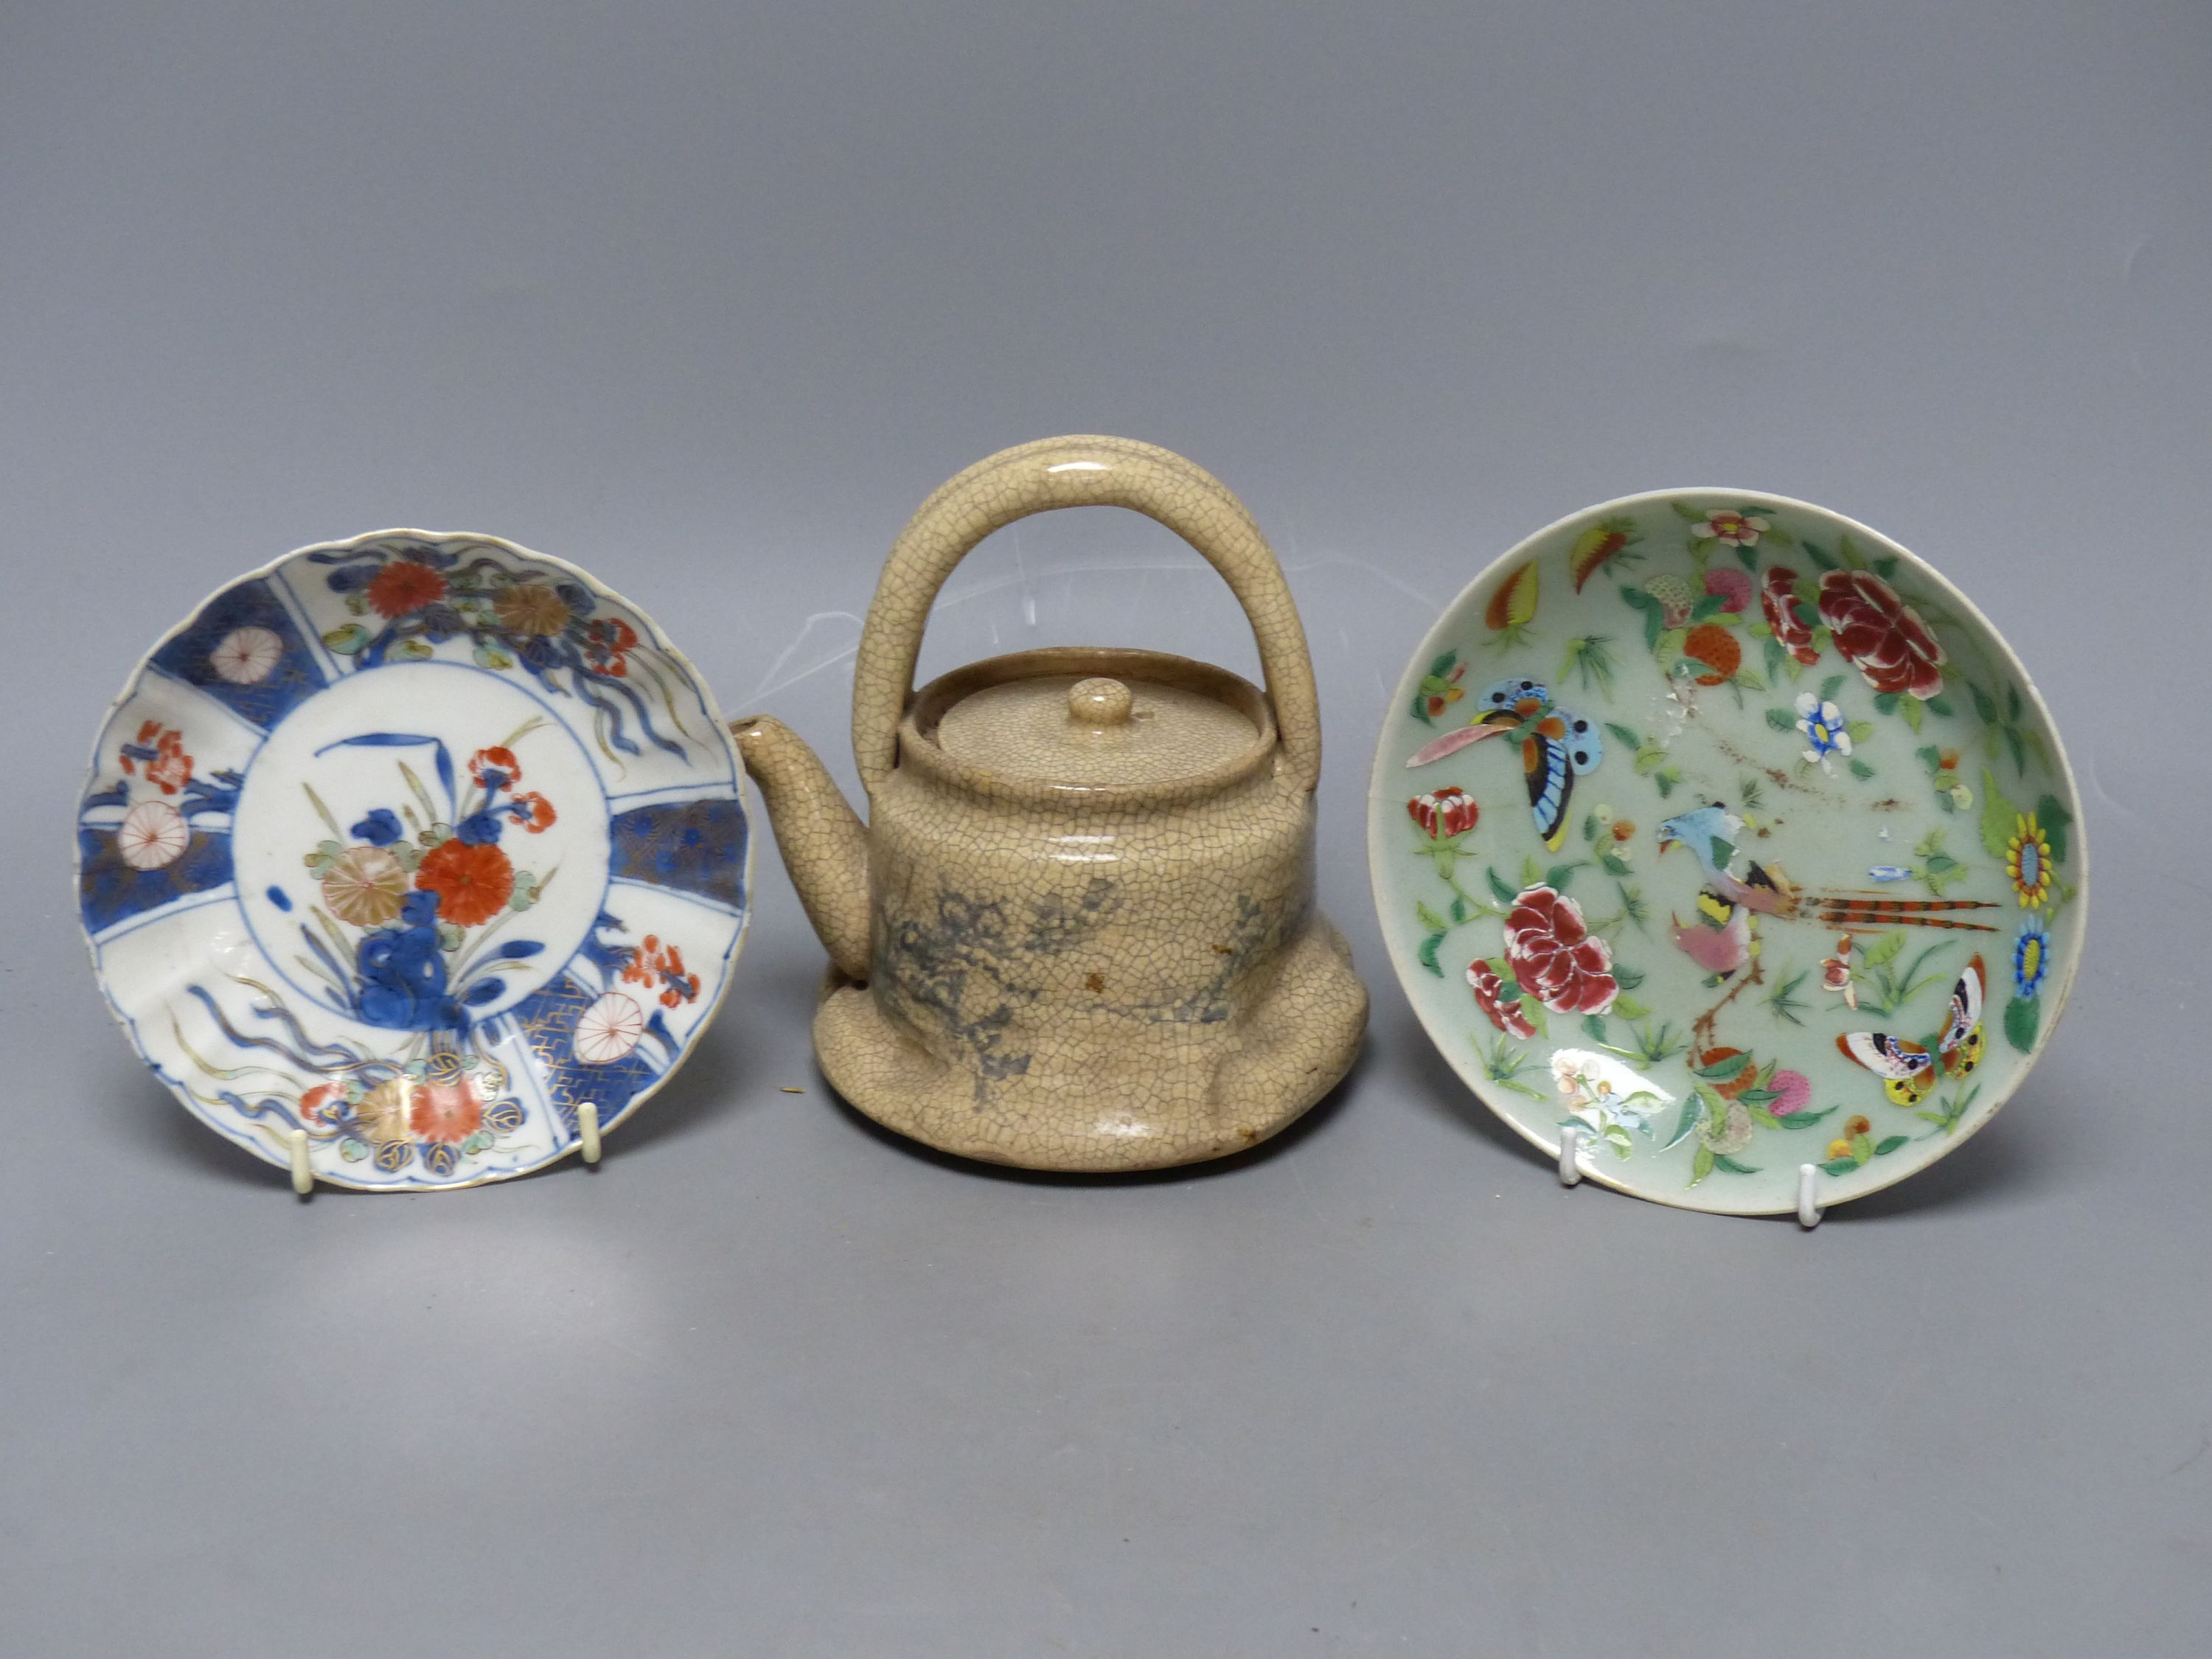 Chinese Imari pattern dishes, two others, a teapot, height 15cm, and a pottery bowl - Bild 3 aus 5